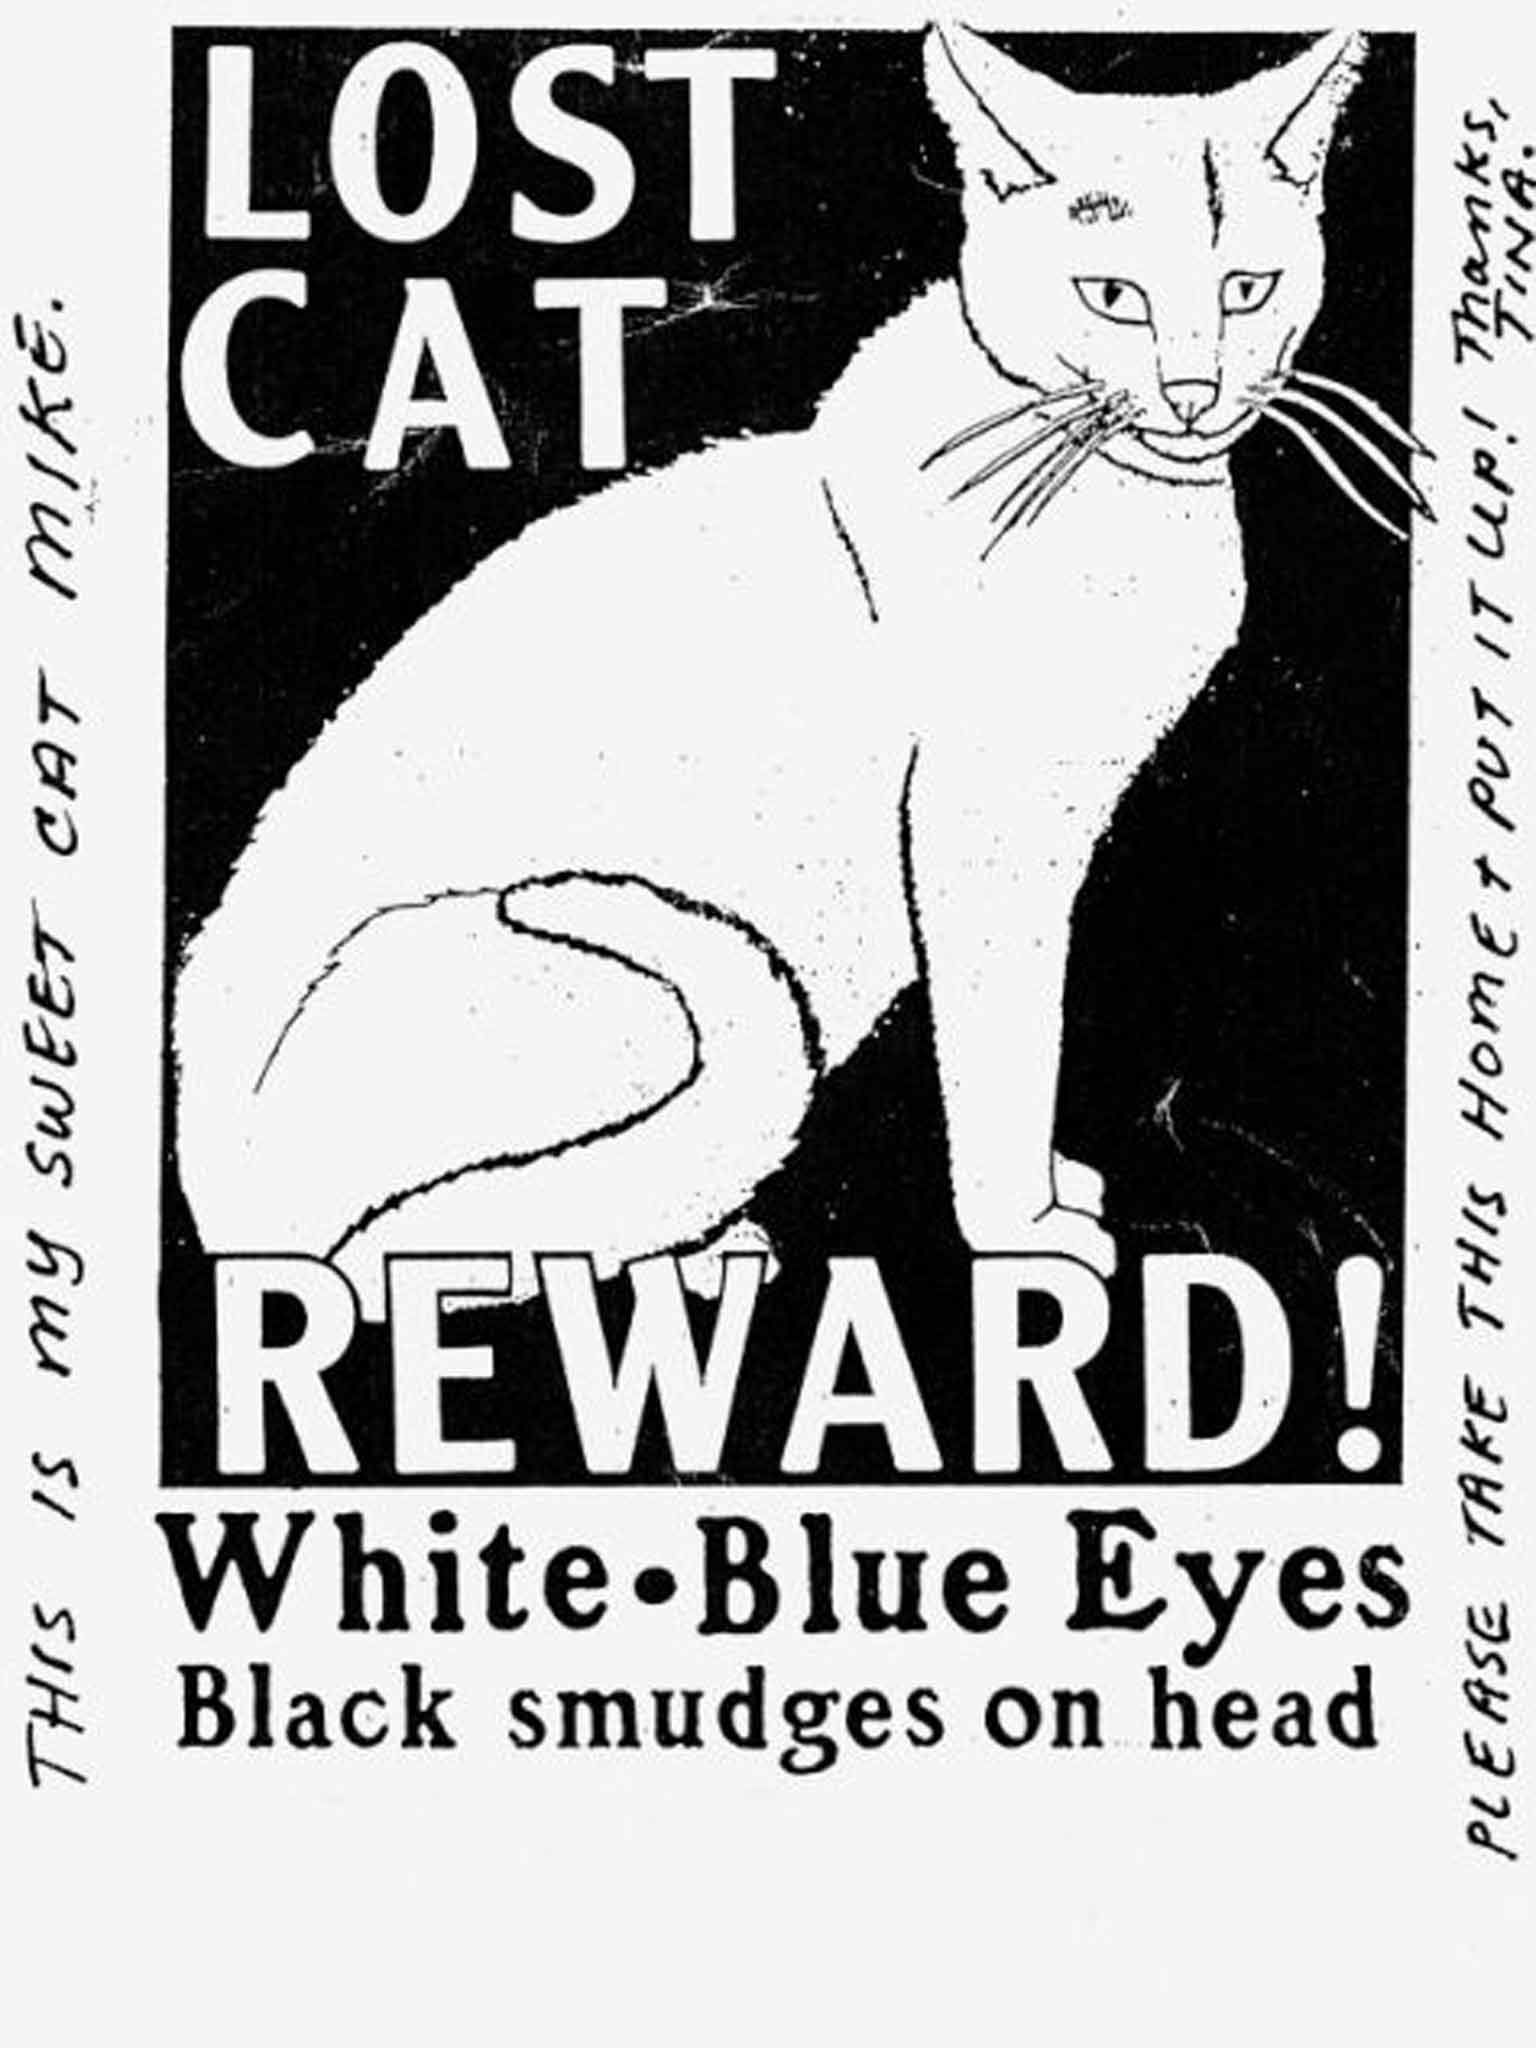 Every Missing Pet Poster Tells Story >> Lost Pets Posters The Photocopied Picture Of A Much Missed